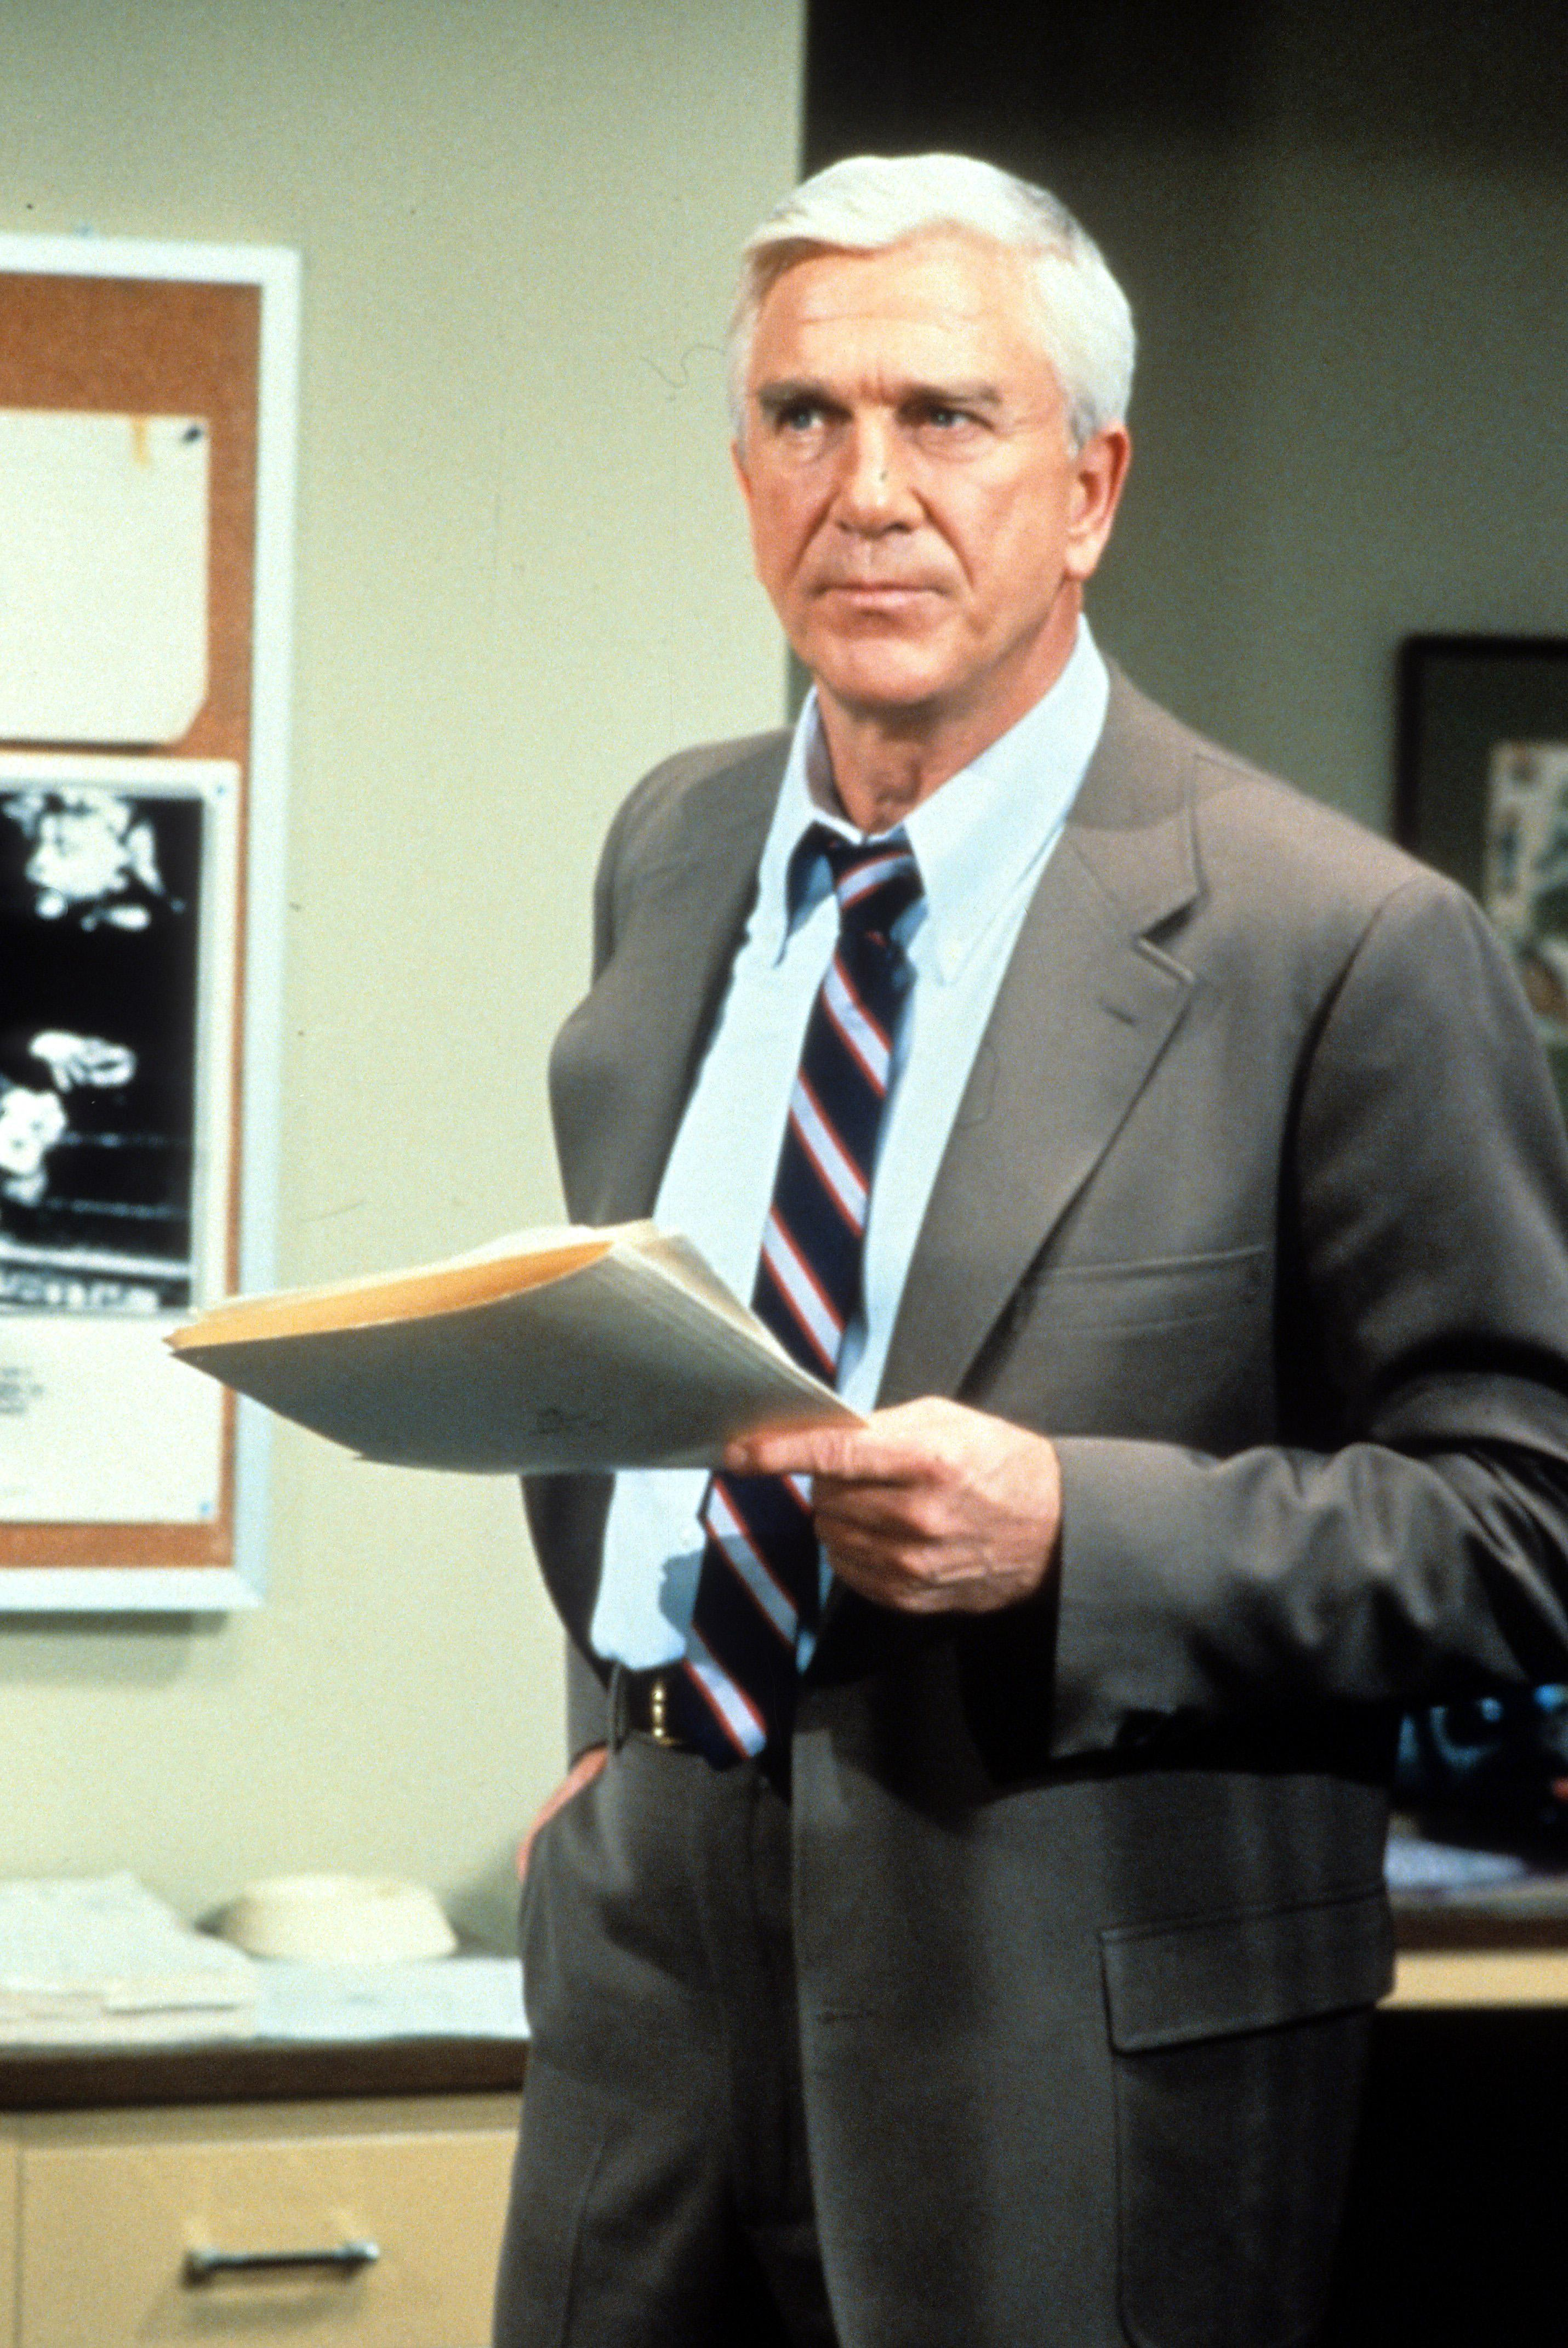 Leslie Nielsen holding folders in a scene from the television series 'Police Squad!', 1982. (Photo by Paramount/Getty Images)